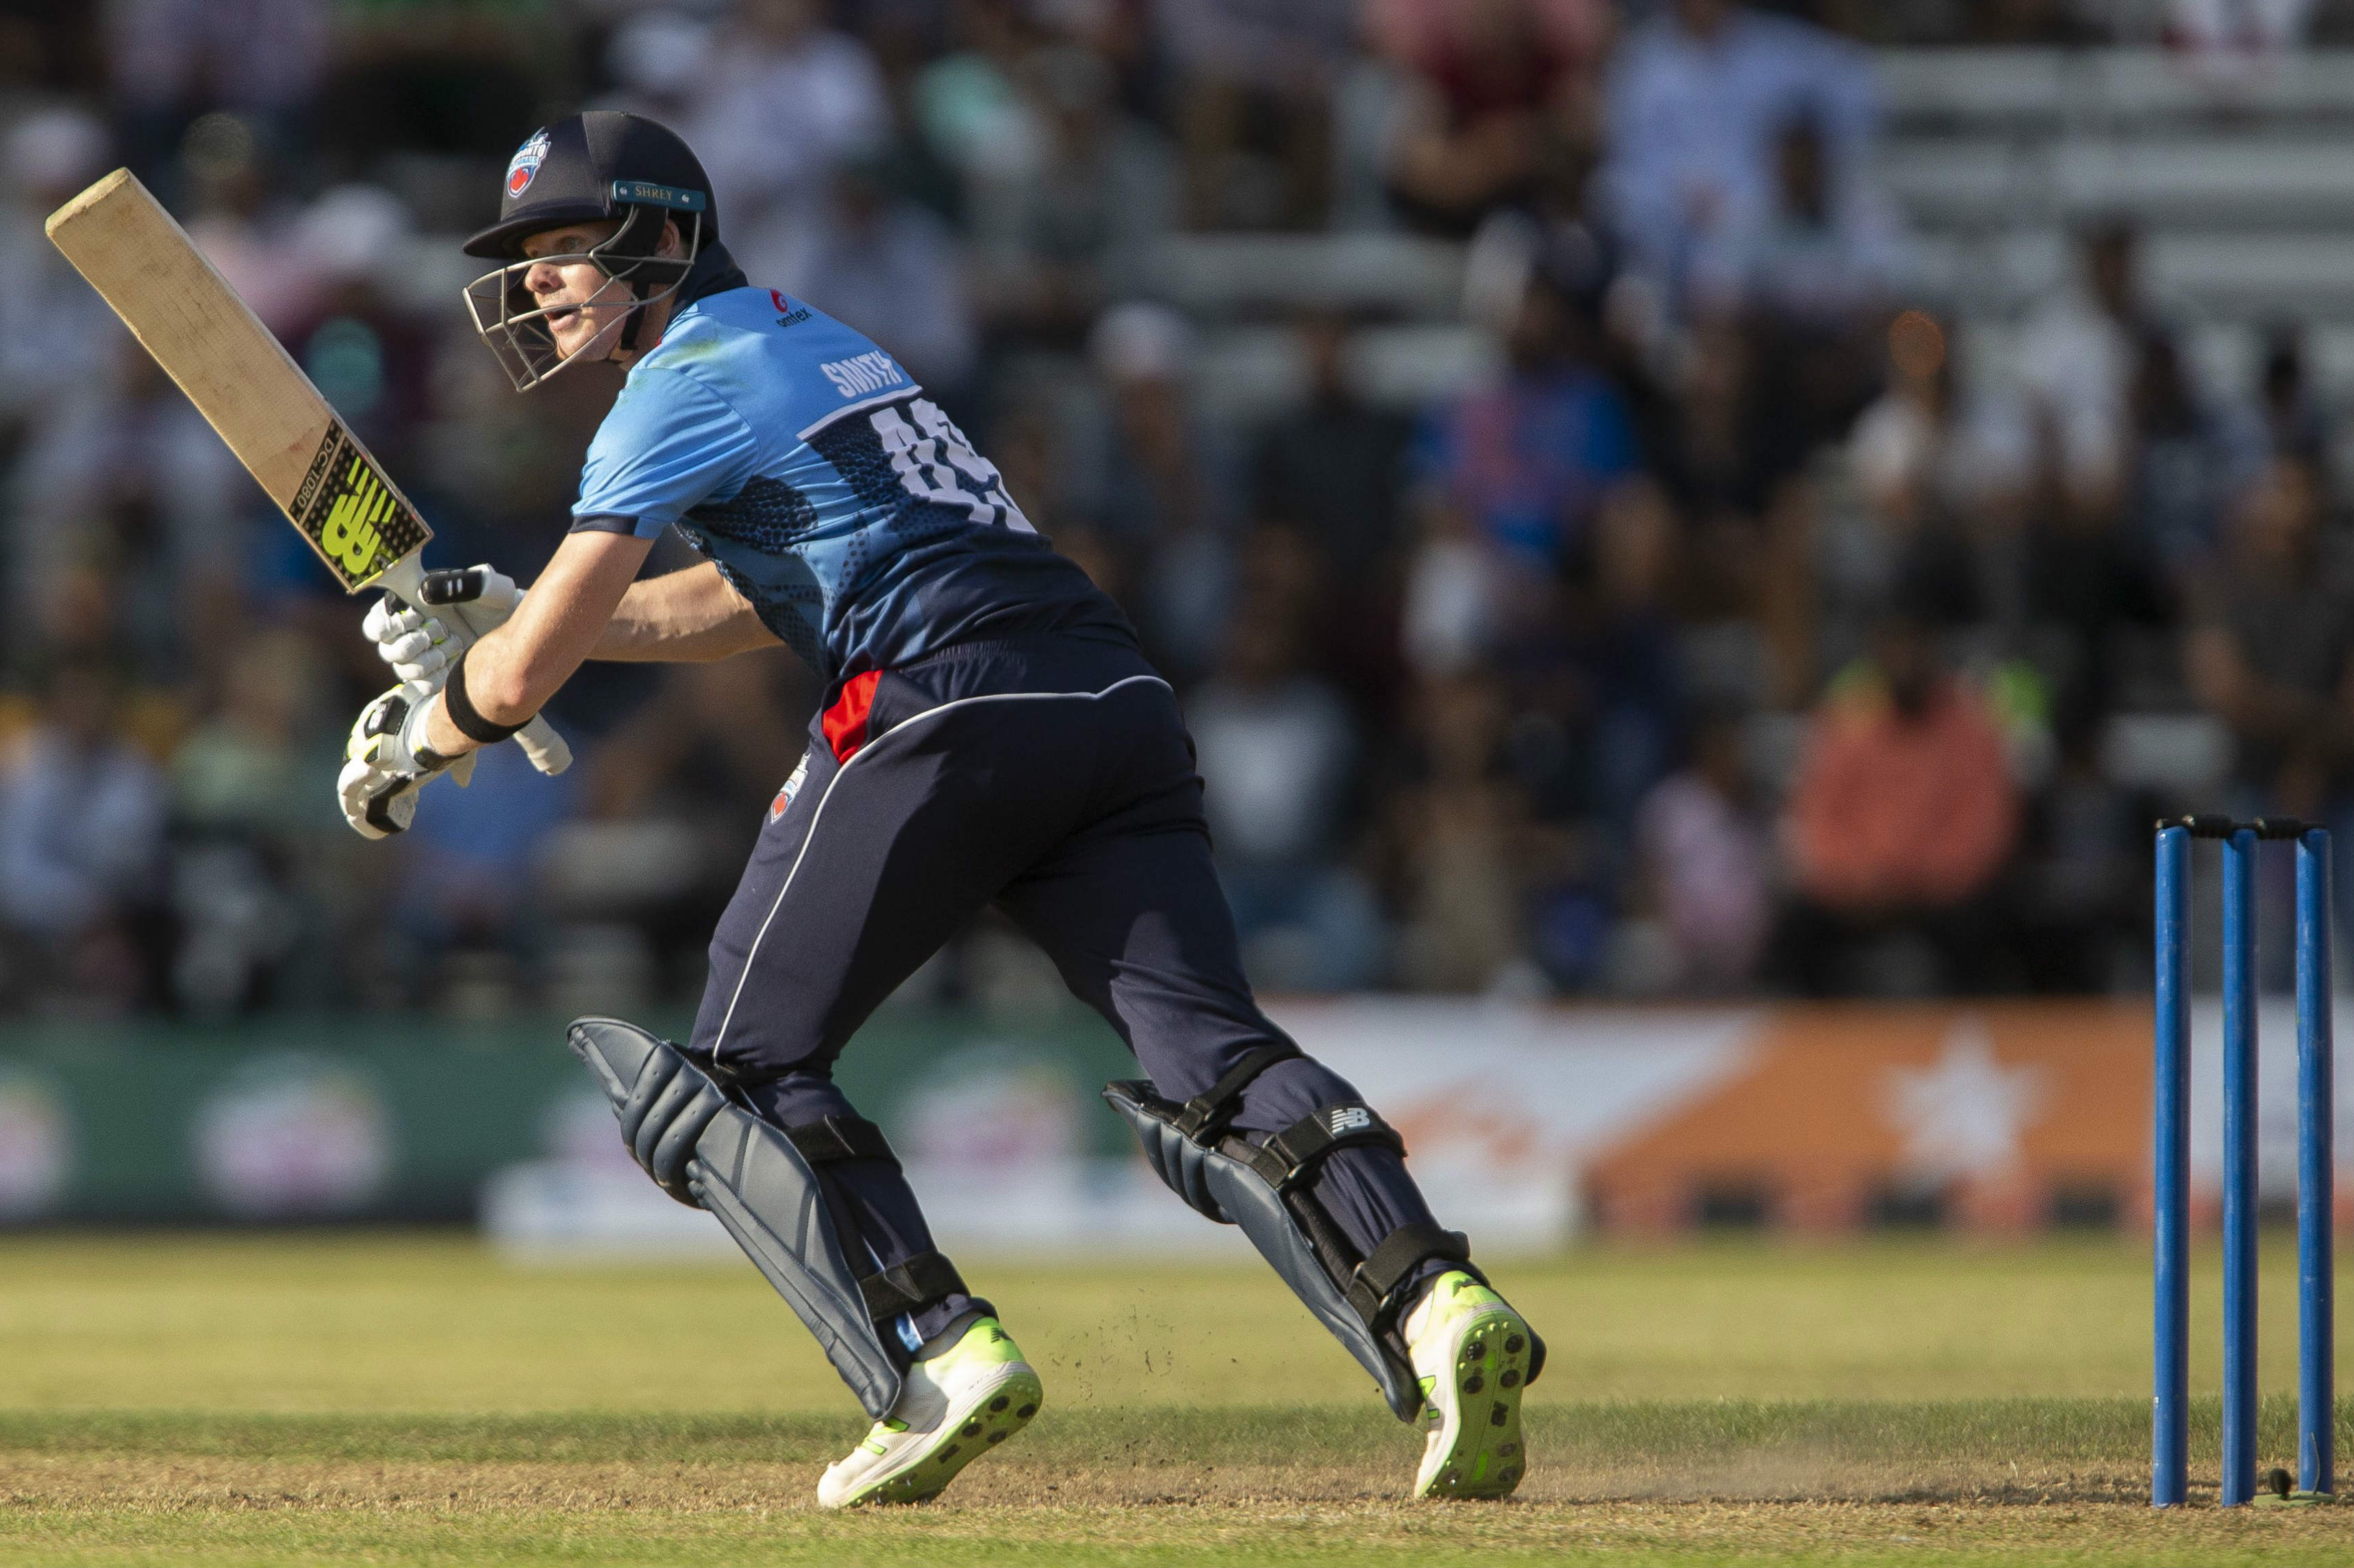 Steve Smith hit a brilliant 61 off 41 balls for Toronto Nationals